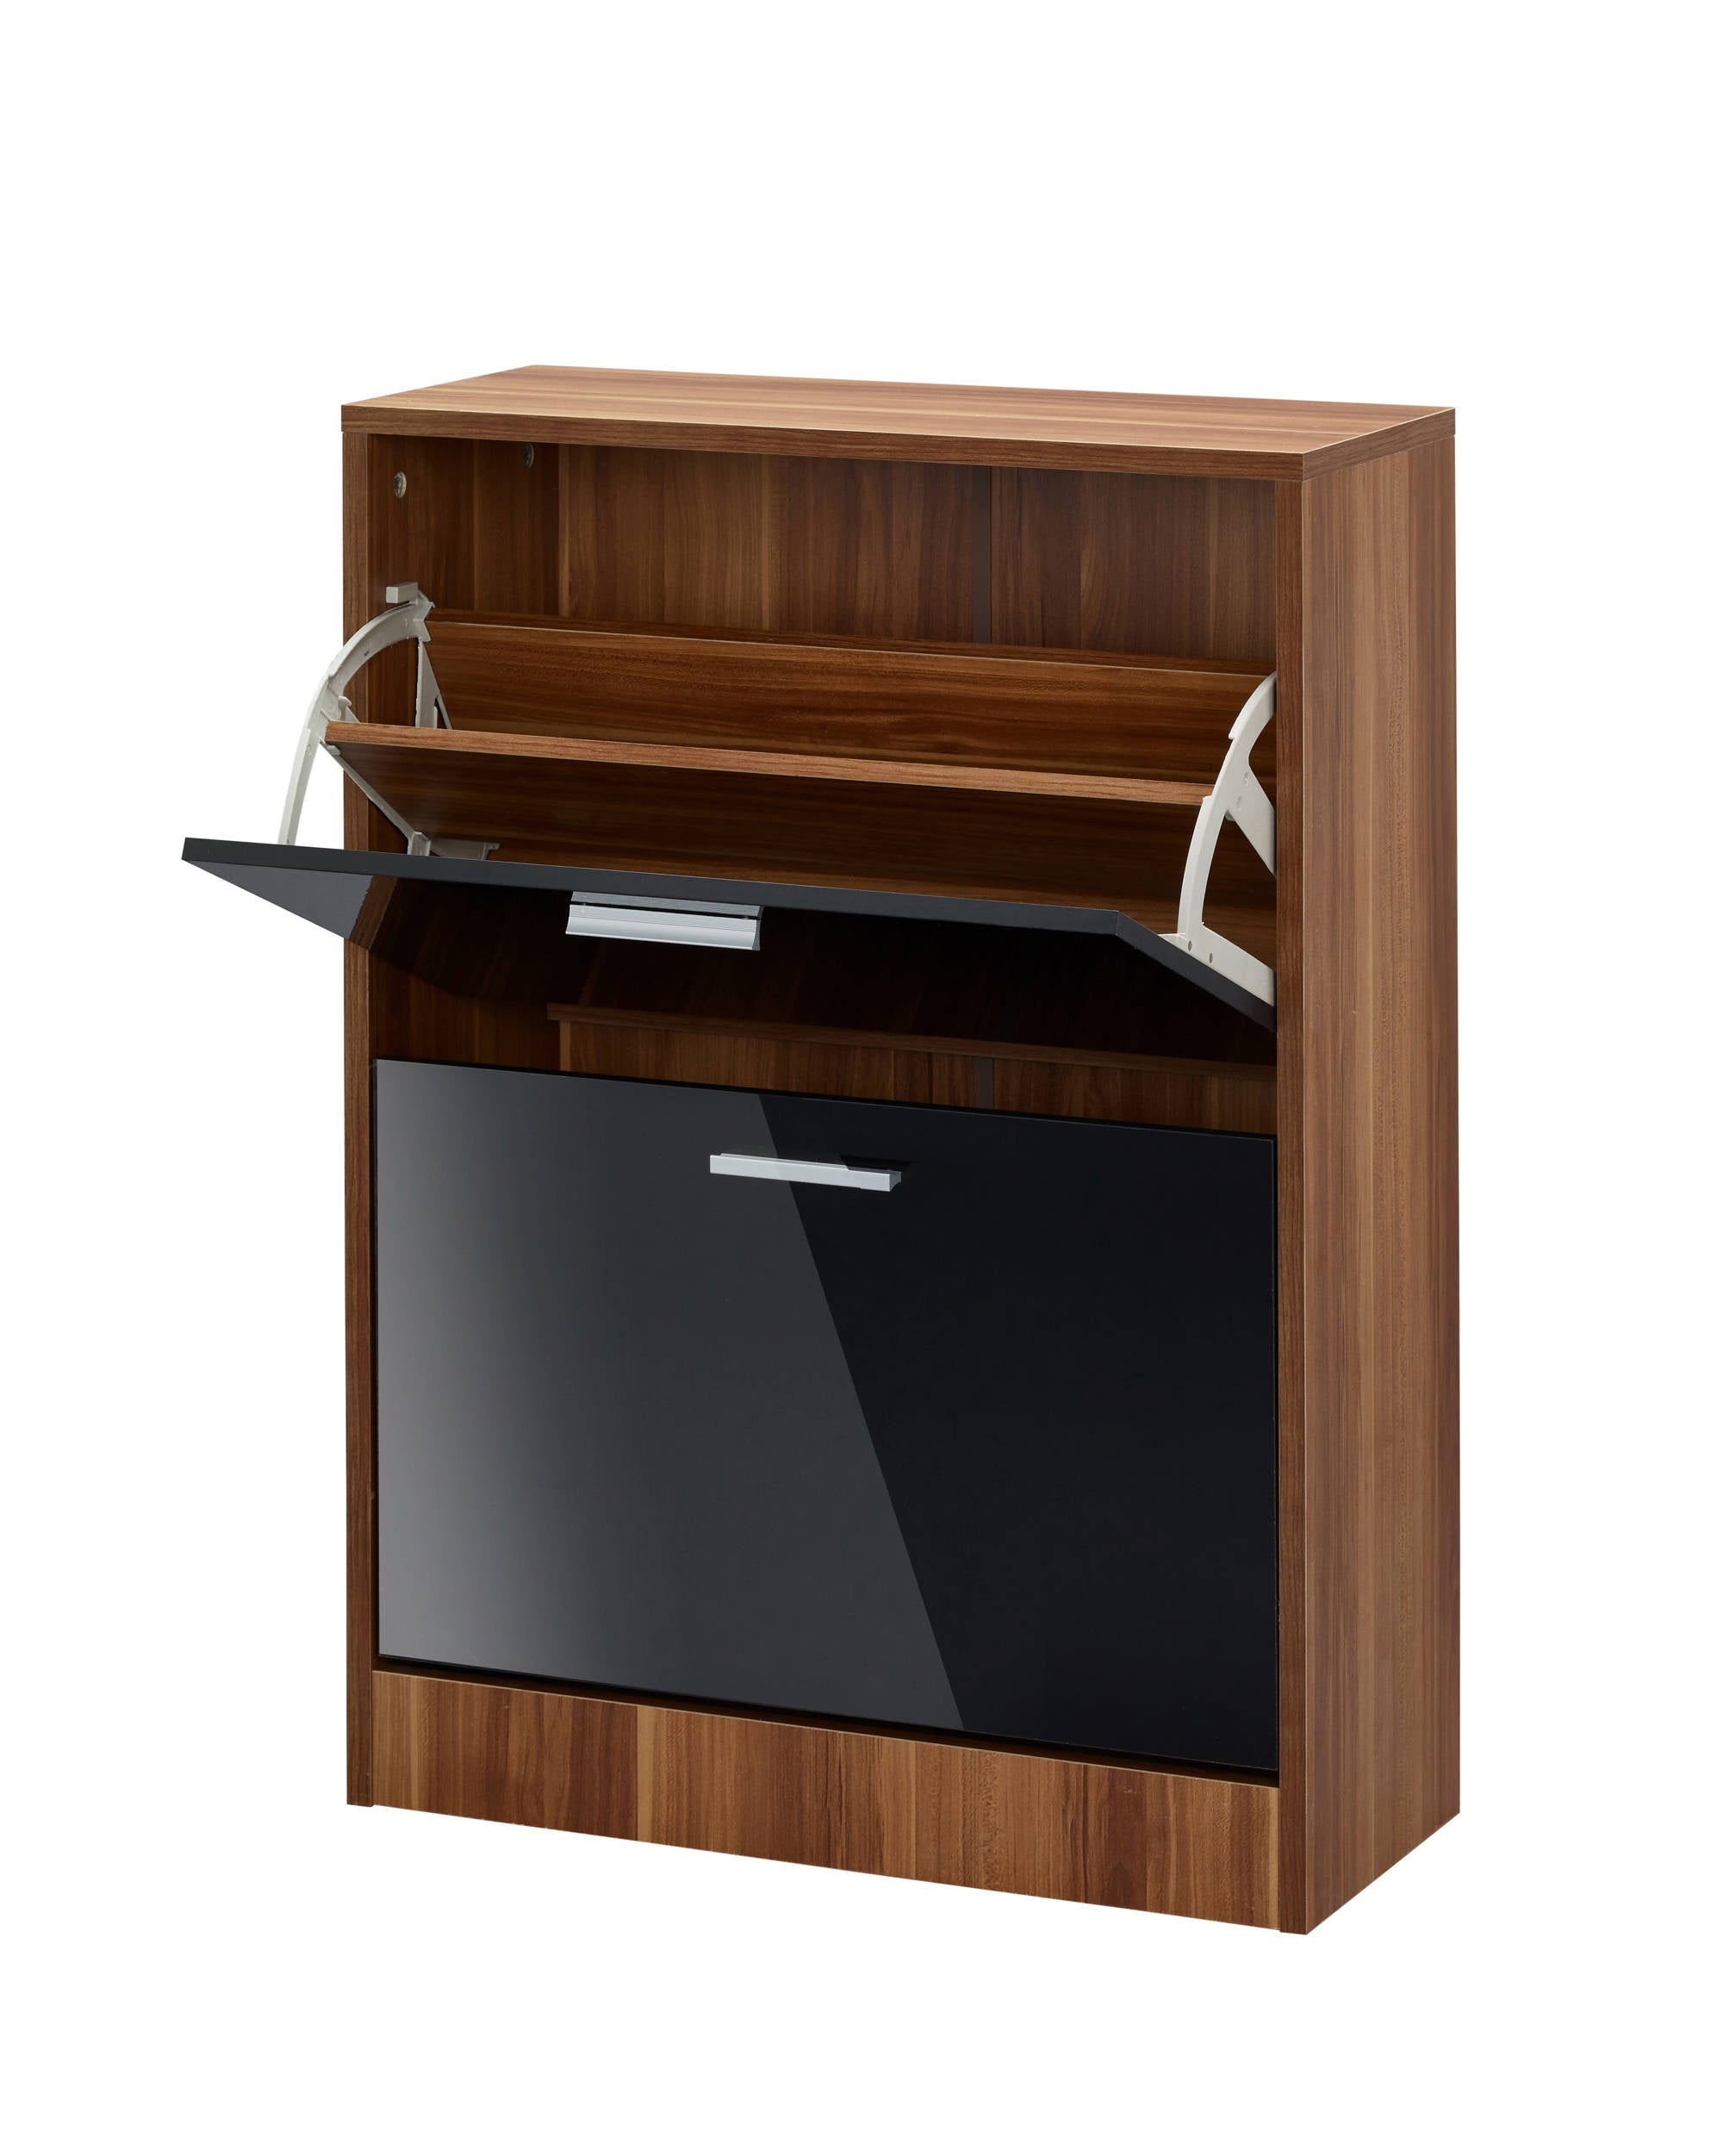 Chancery 2 Drawer Shoe Cabinet in Black - Ezzo